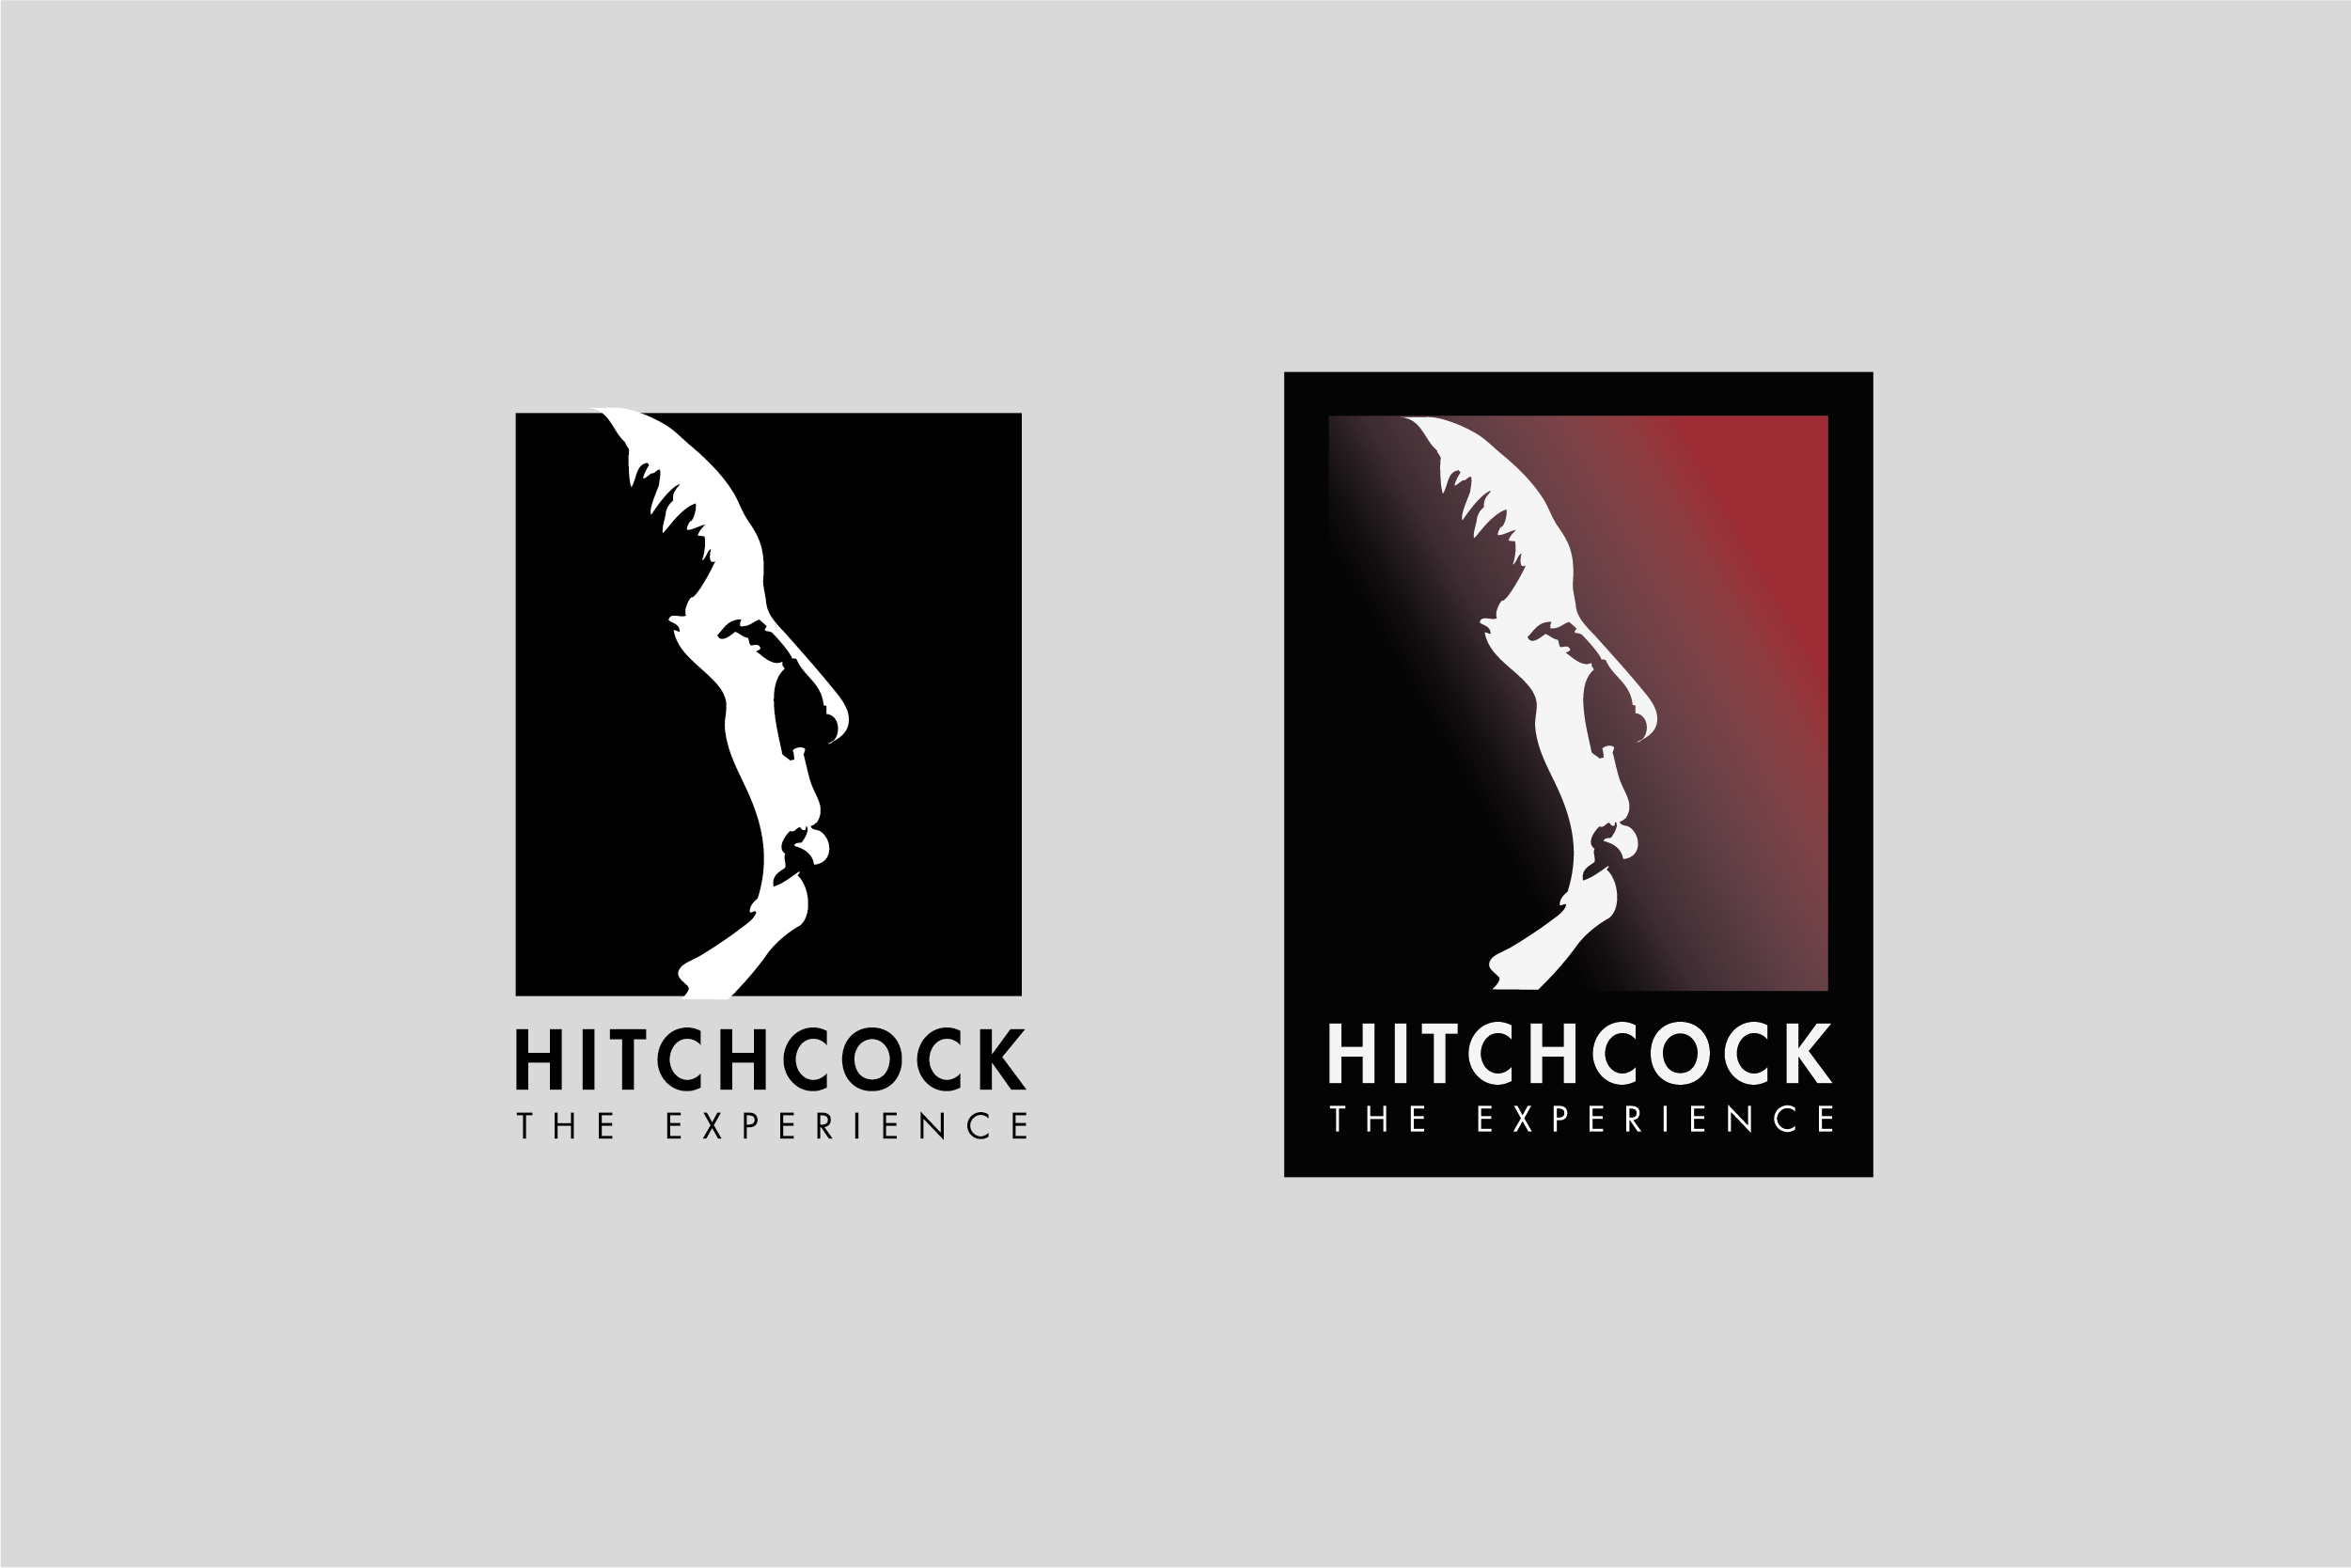 Hitchcock_Website_logos